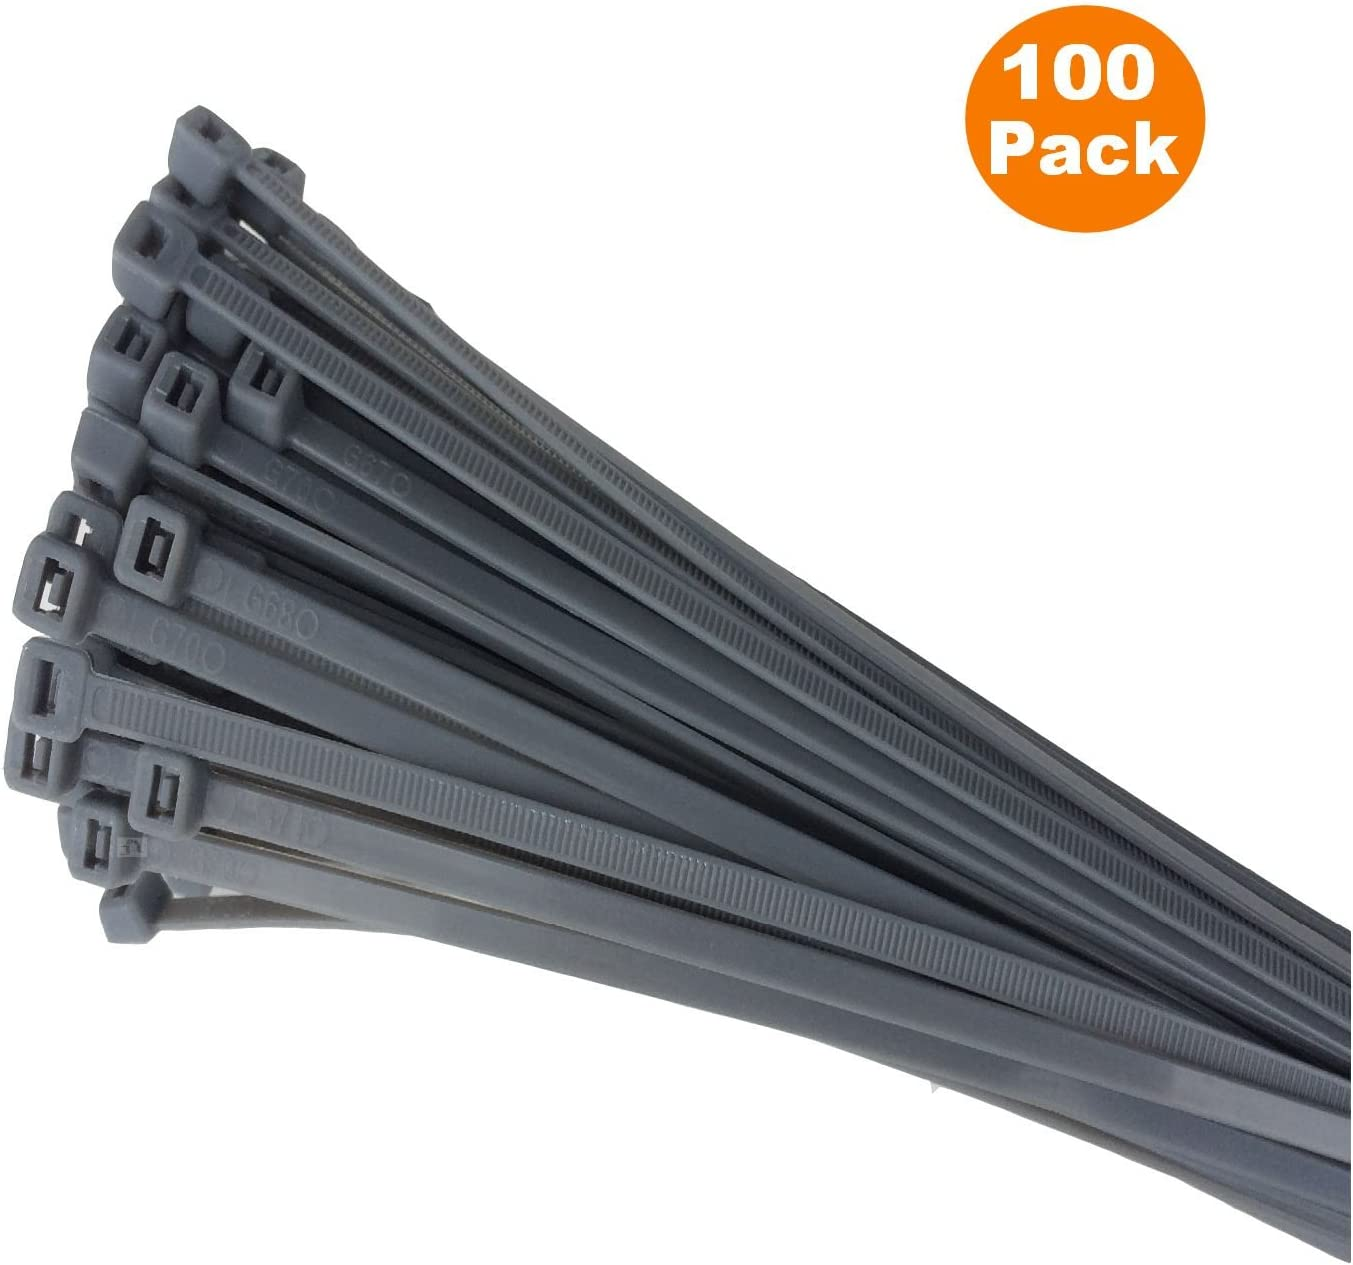 HIGH QUALITY Strong Nylon Coloured Plastic Zip Tie Wrap 100 BLACK CABLE TIES